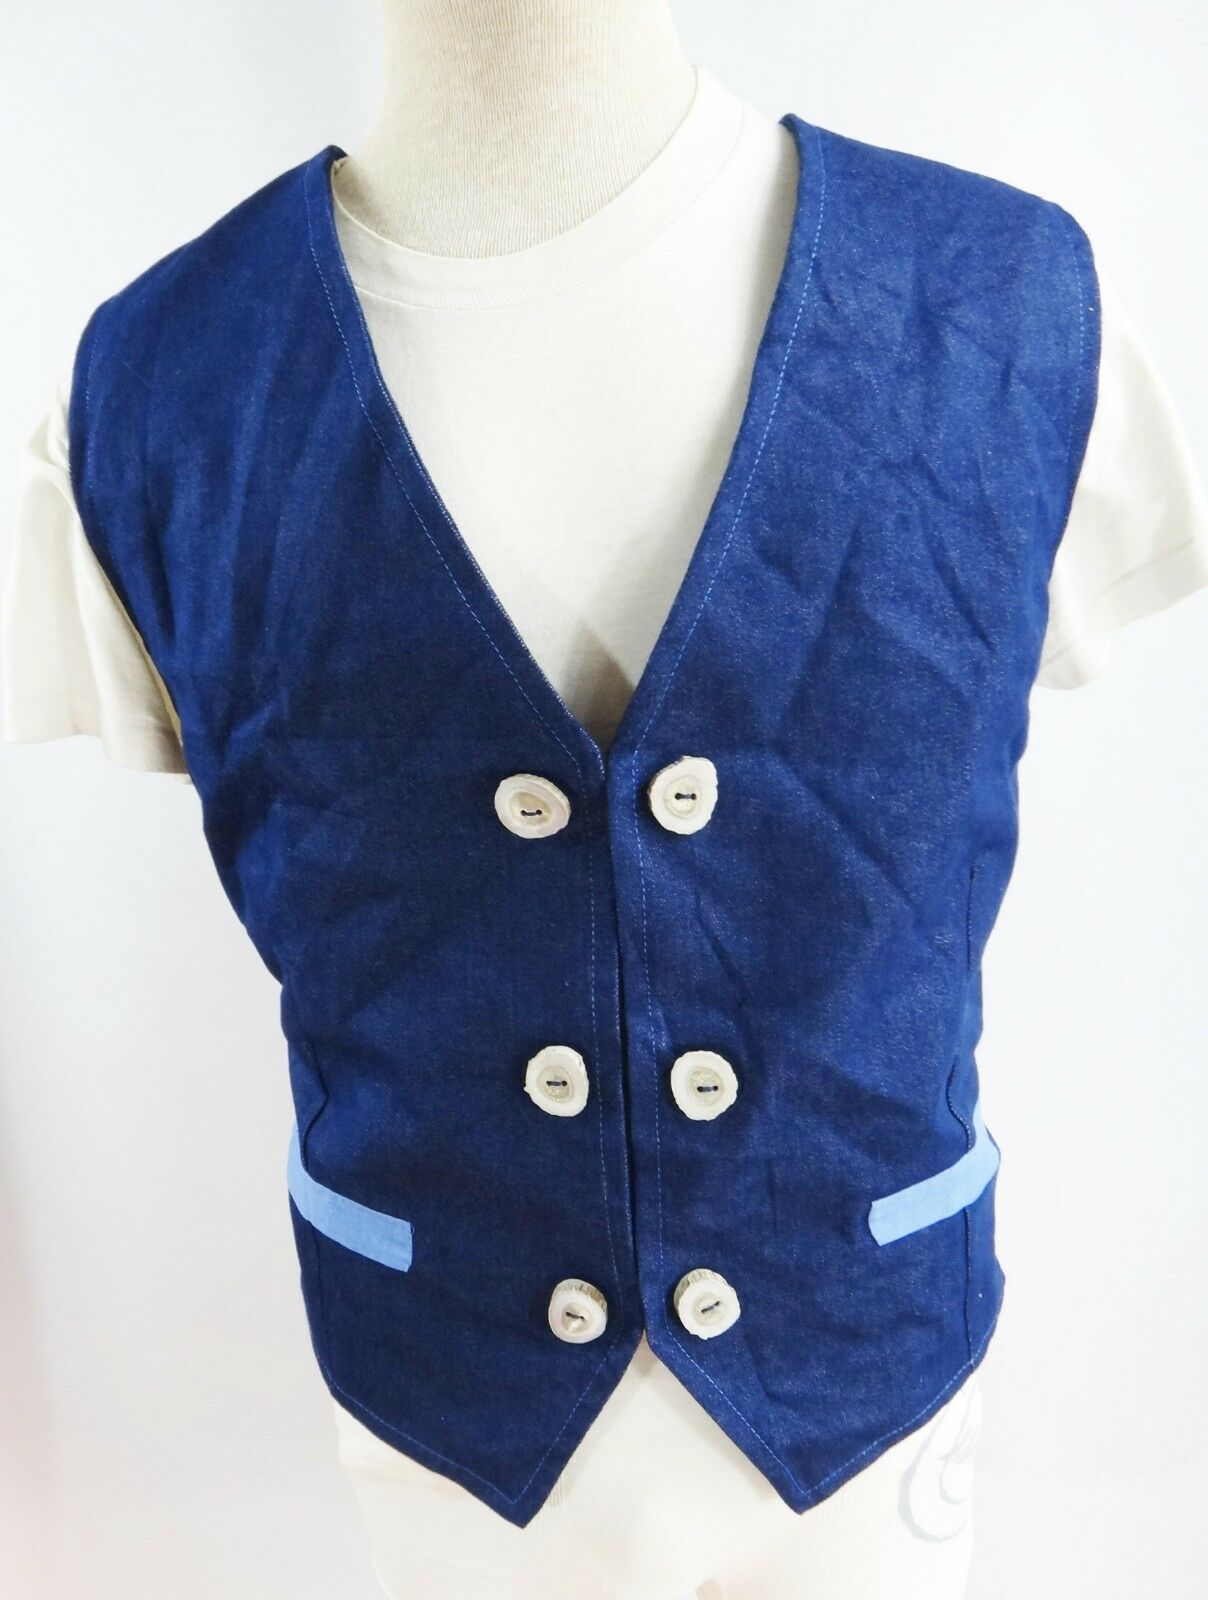 Handmade LARGE antler button vest denim denim denim cowboy blu jean clown steampunk cosplay bb1f21